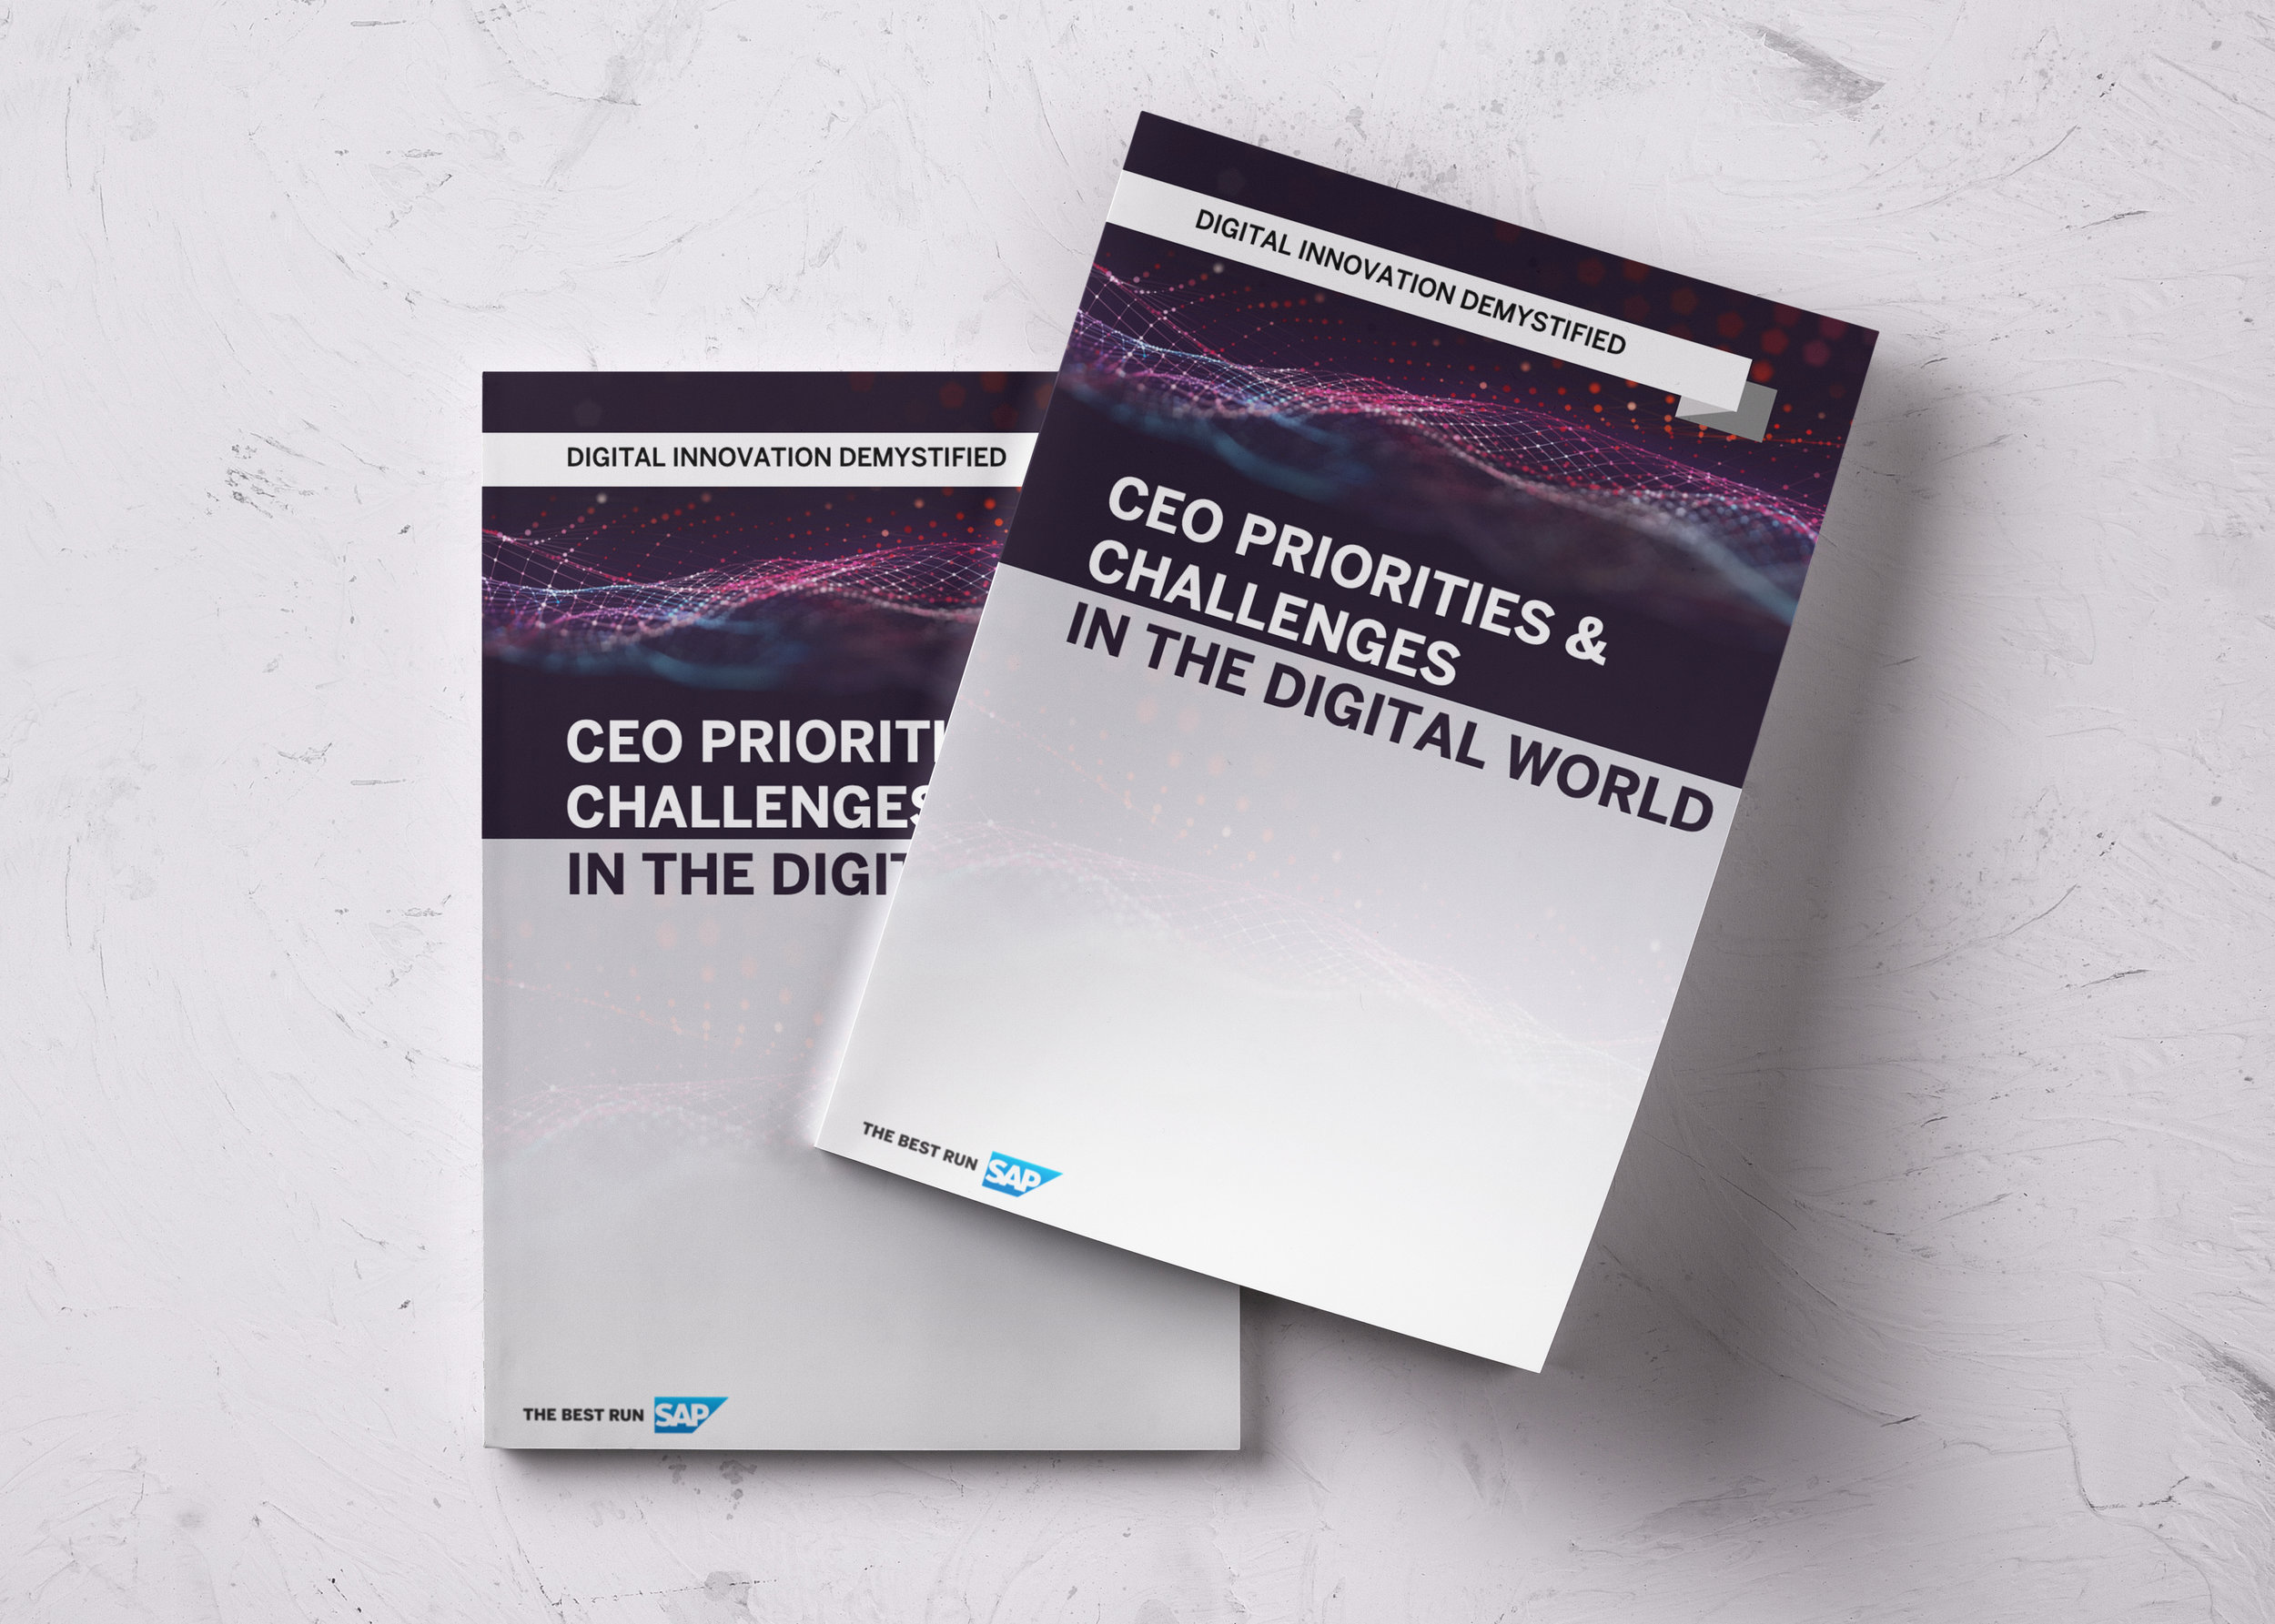 CEO priorities White paper